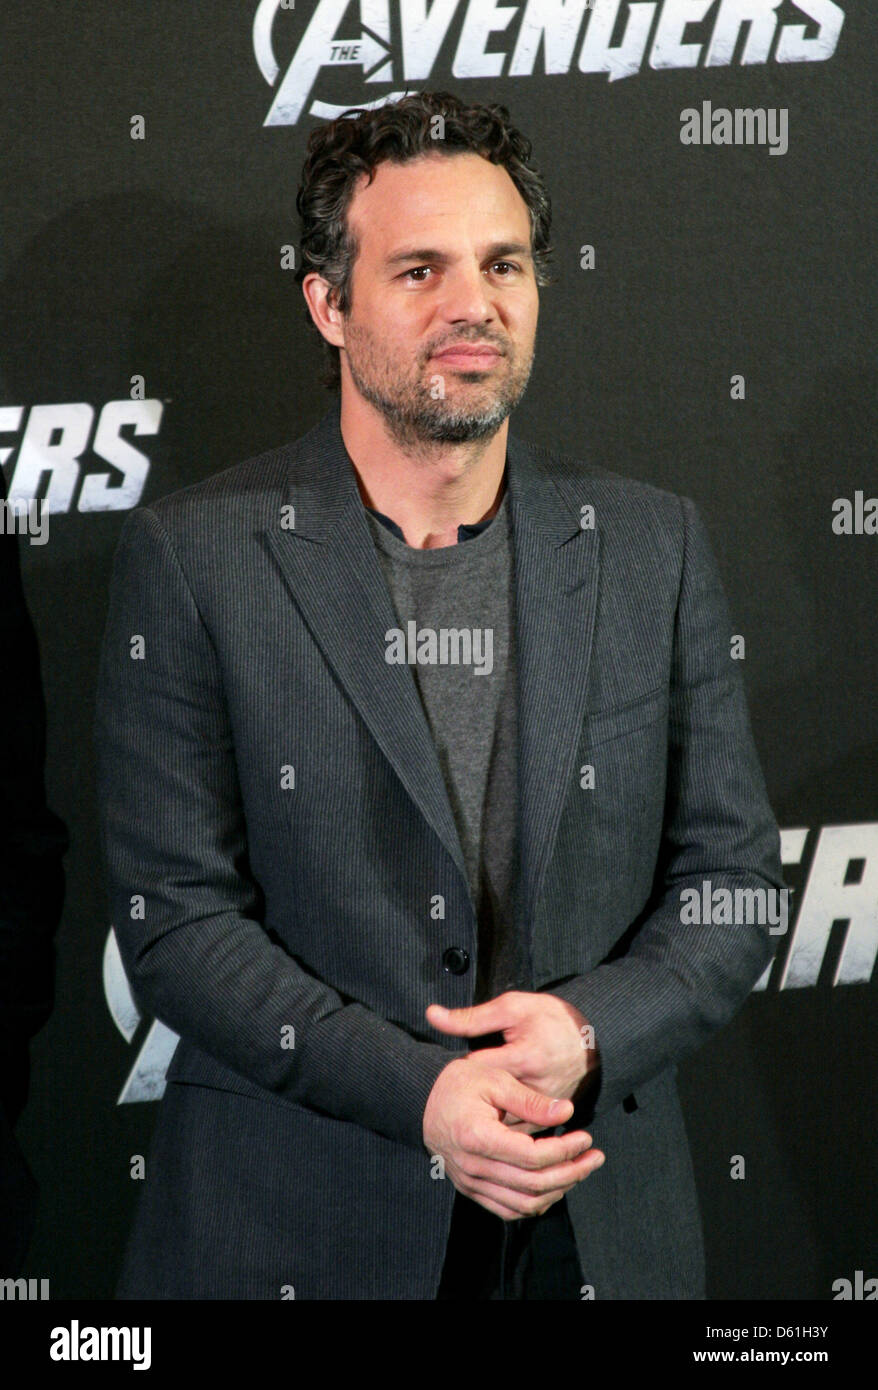 American actor Mark Ruffalo poses for the camera during the 'Marvel's the Avengers' photocall in Berlin, Germany, Stock Photo